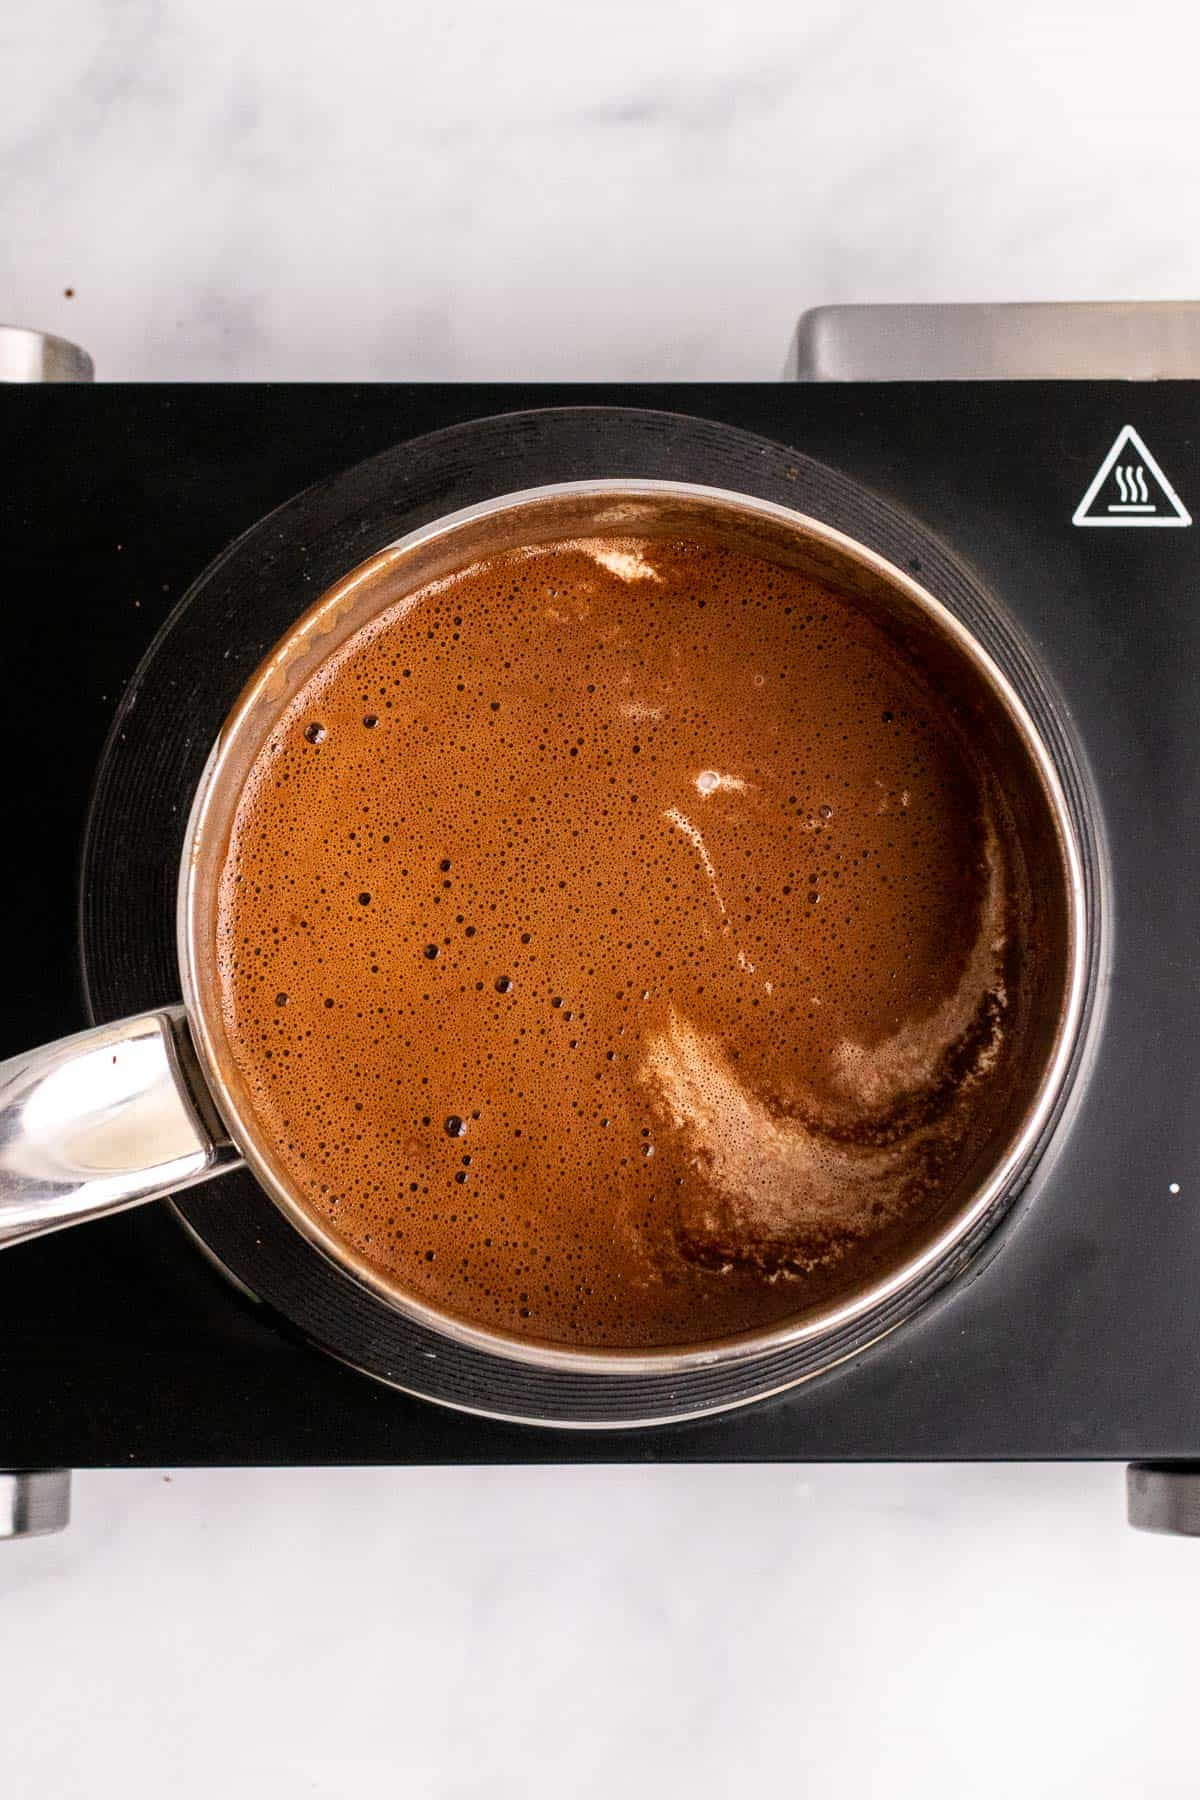 Heavy cream added to the hot chocolate mixture in the pan, as seen from above